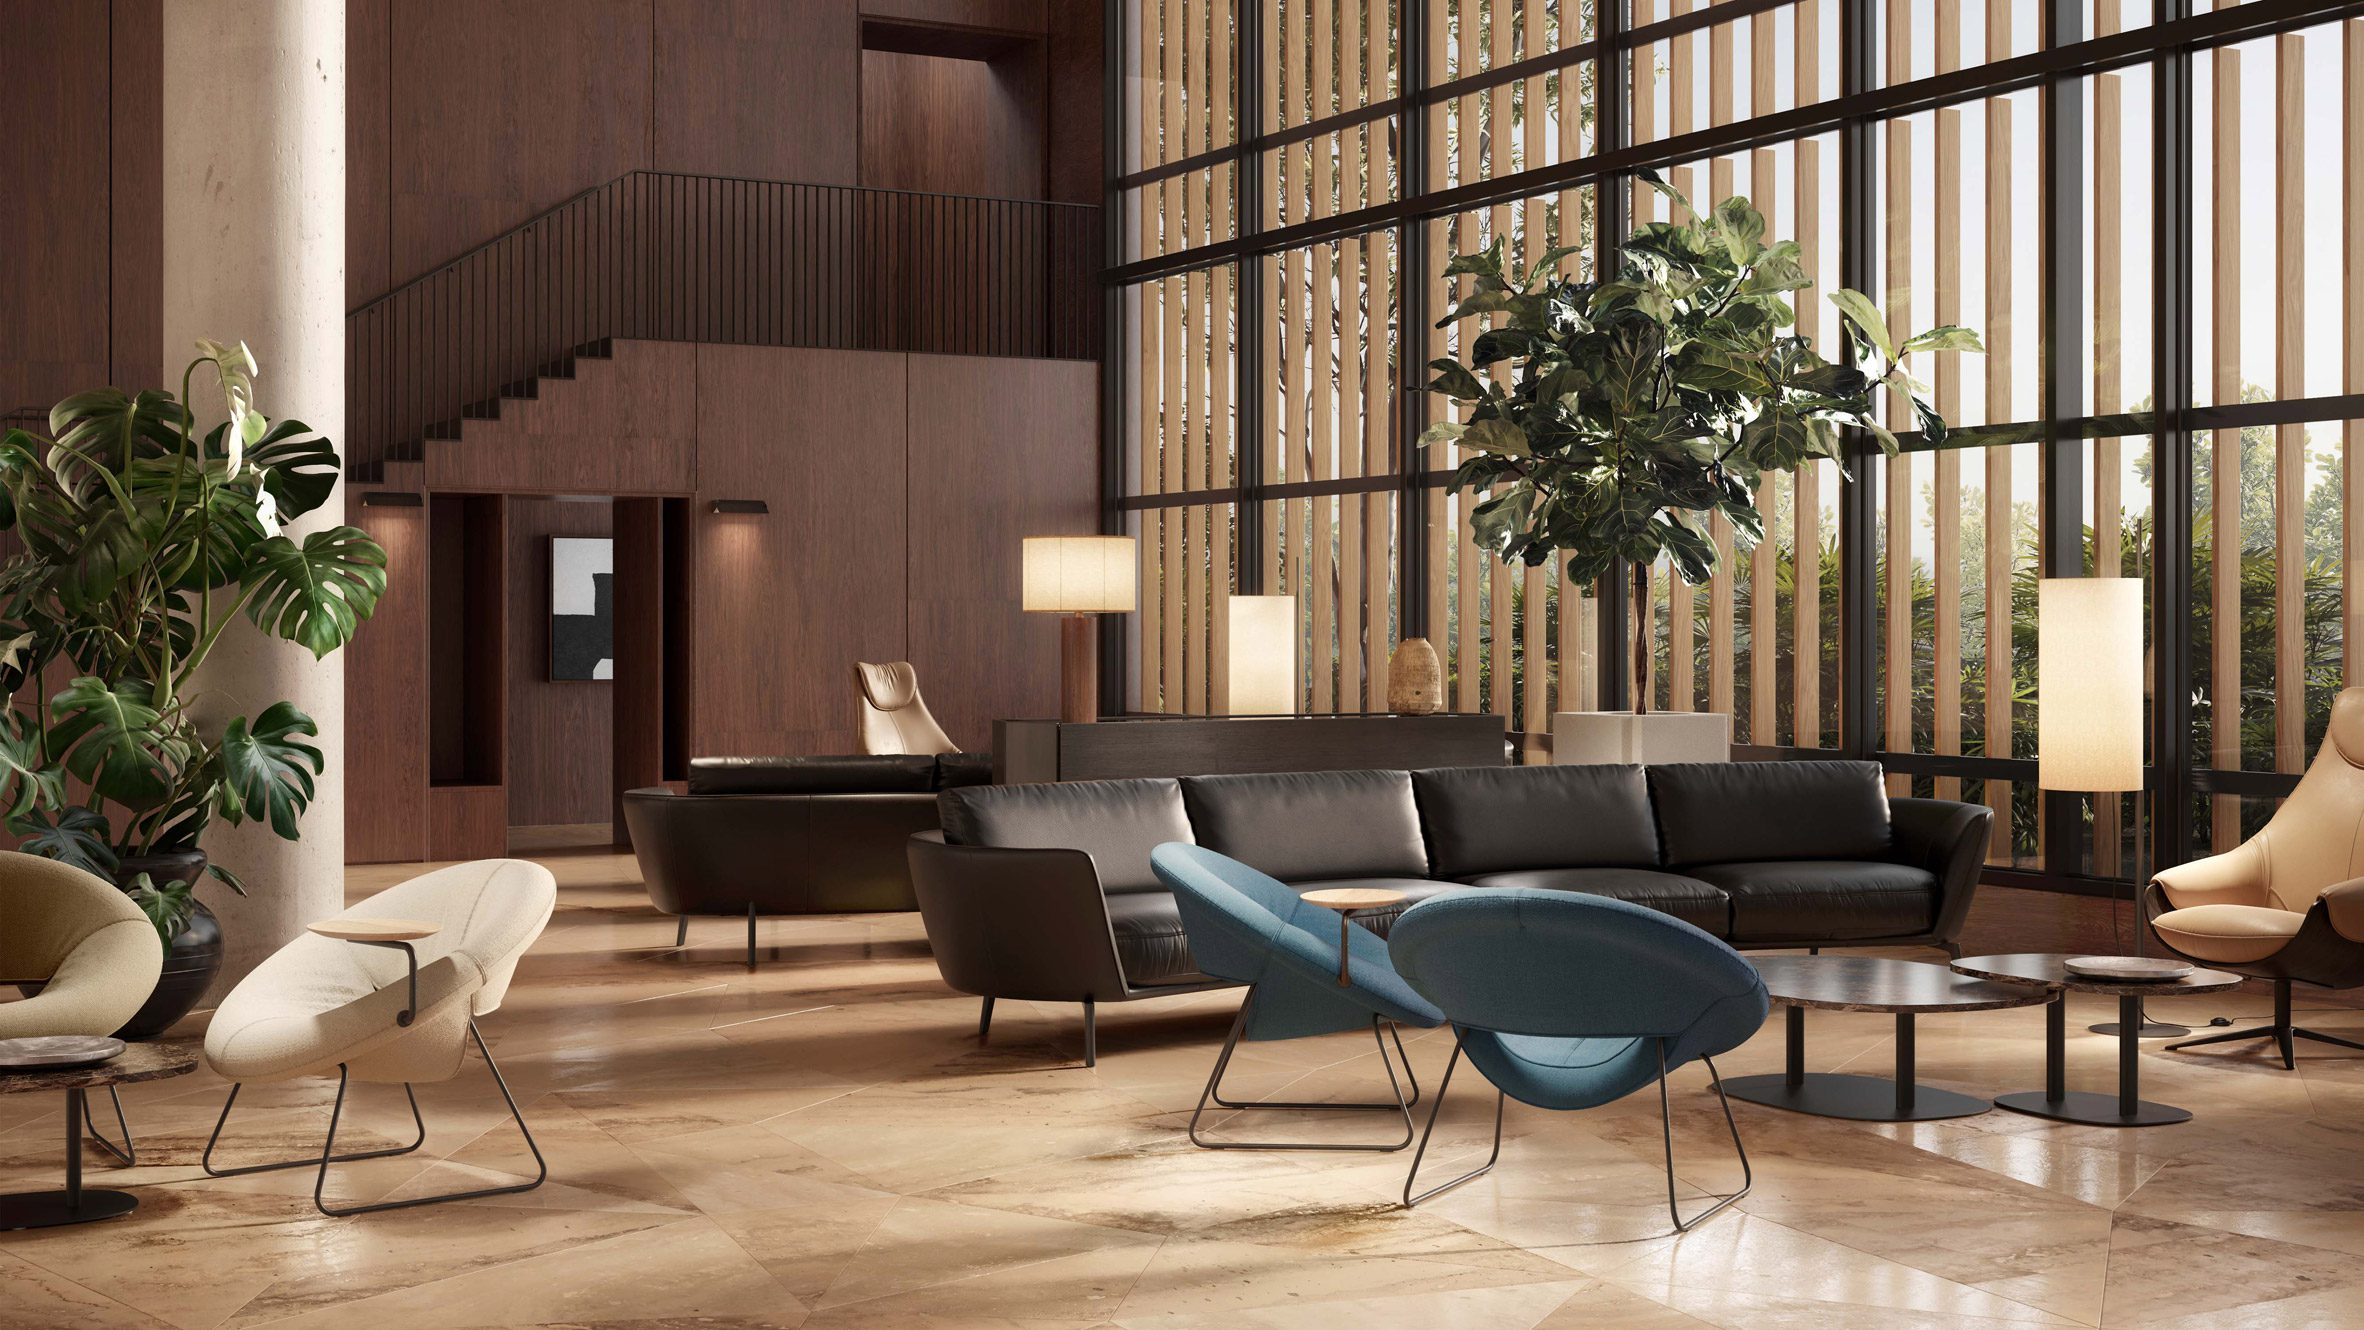 Multiple LXR18 armchairs in blue and beige colours situated in a lounge area with greenery, lamps and sofas dotted around